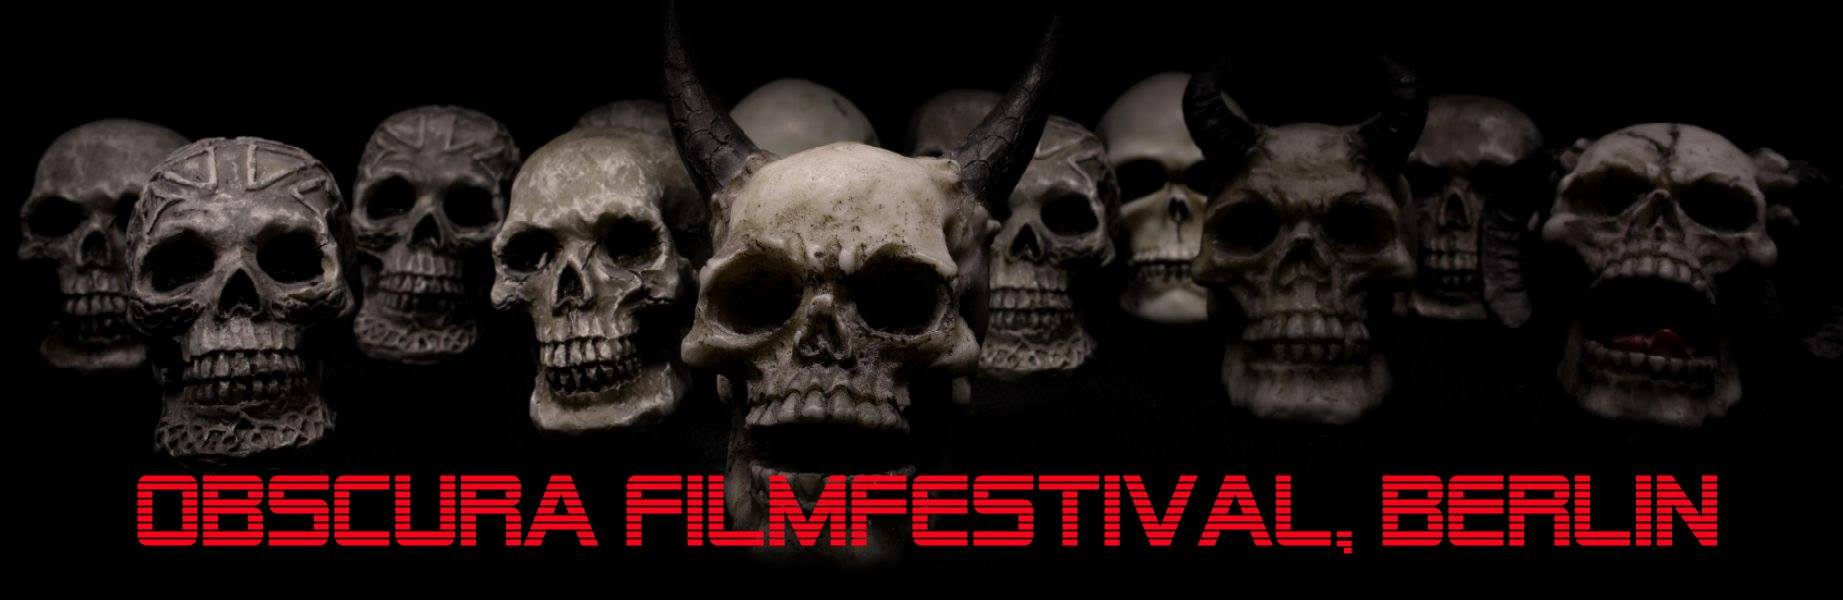 Obscura Filmfest